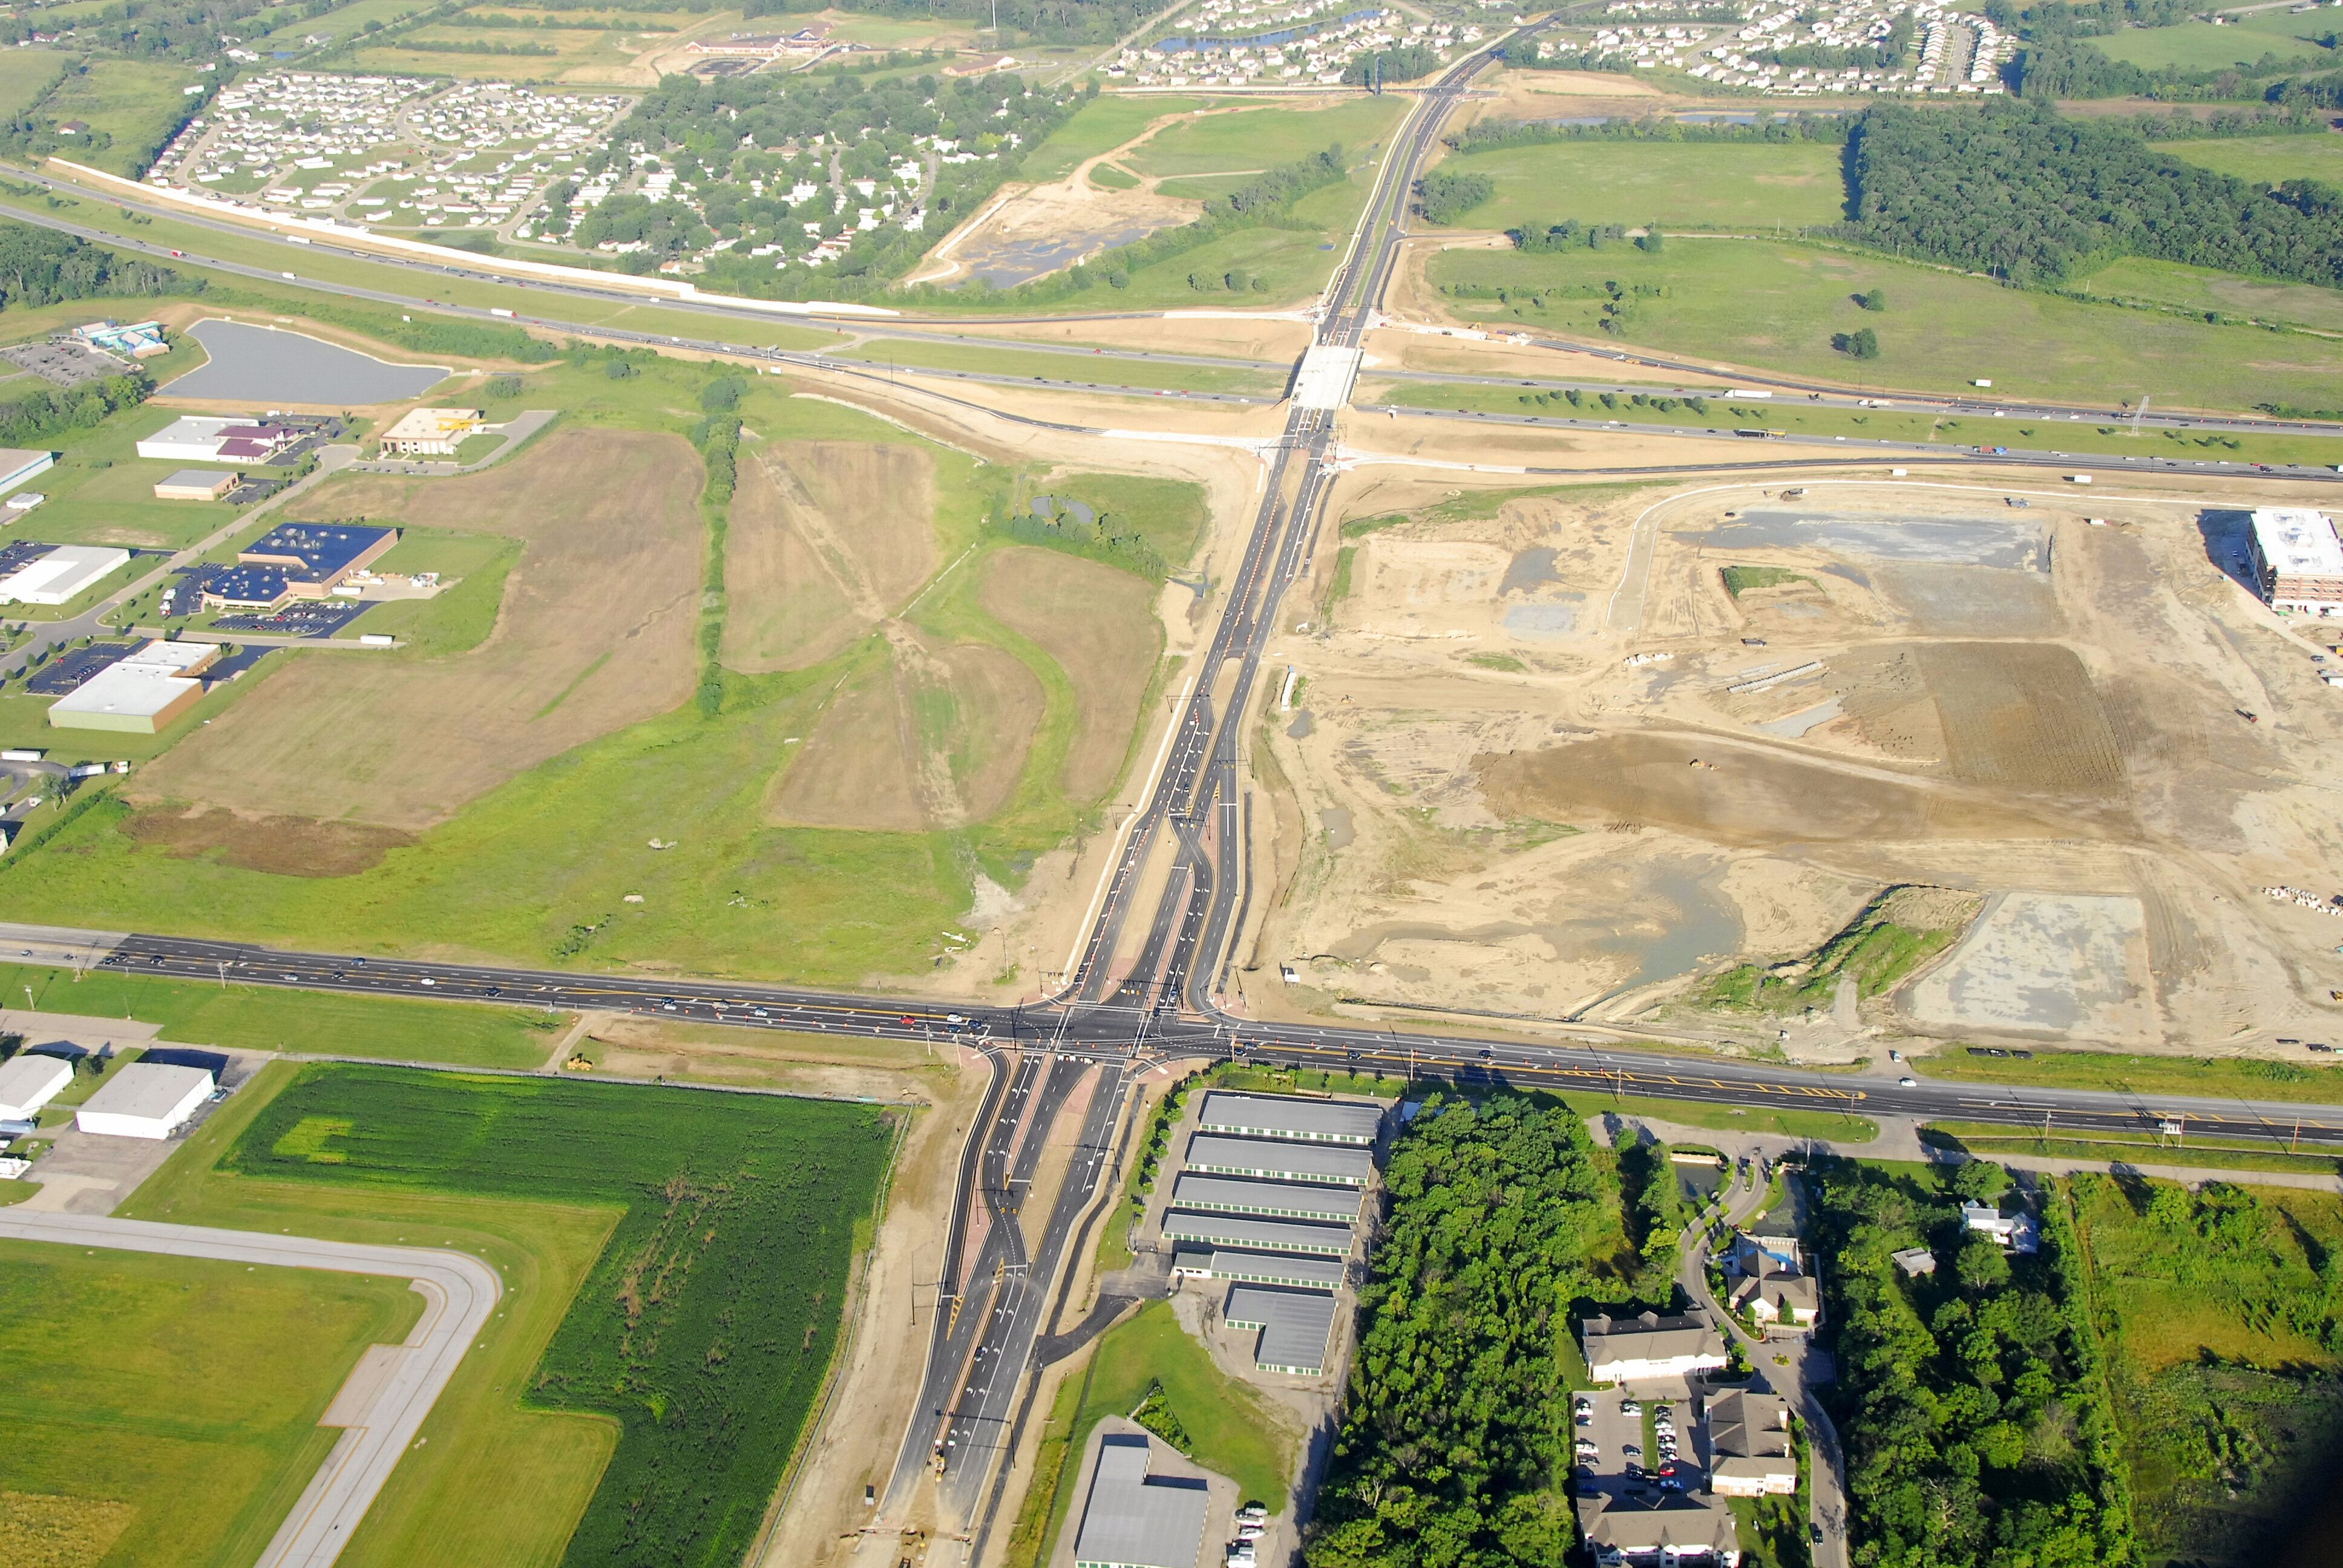 Continuous flow intersection at Austin Pike/I-75 (Dayton, OH). BCS, LLC provided right-of-way plan development for this innovative solution to traffic flow problems.